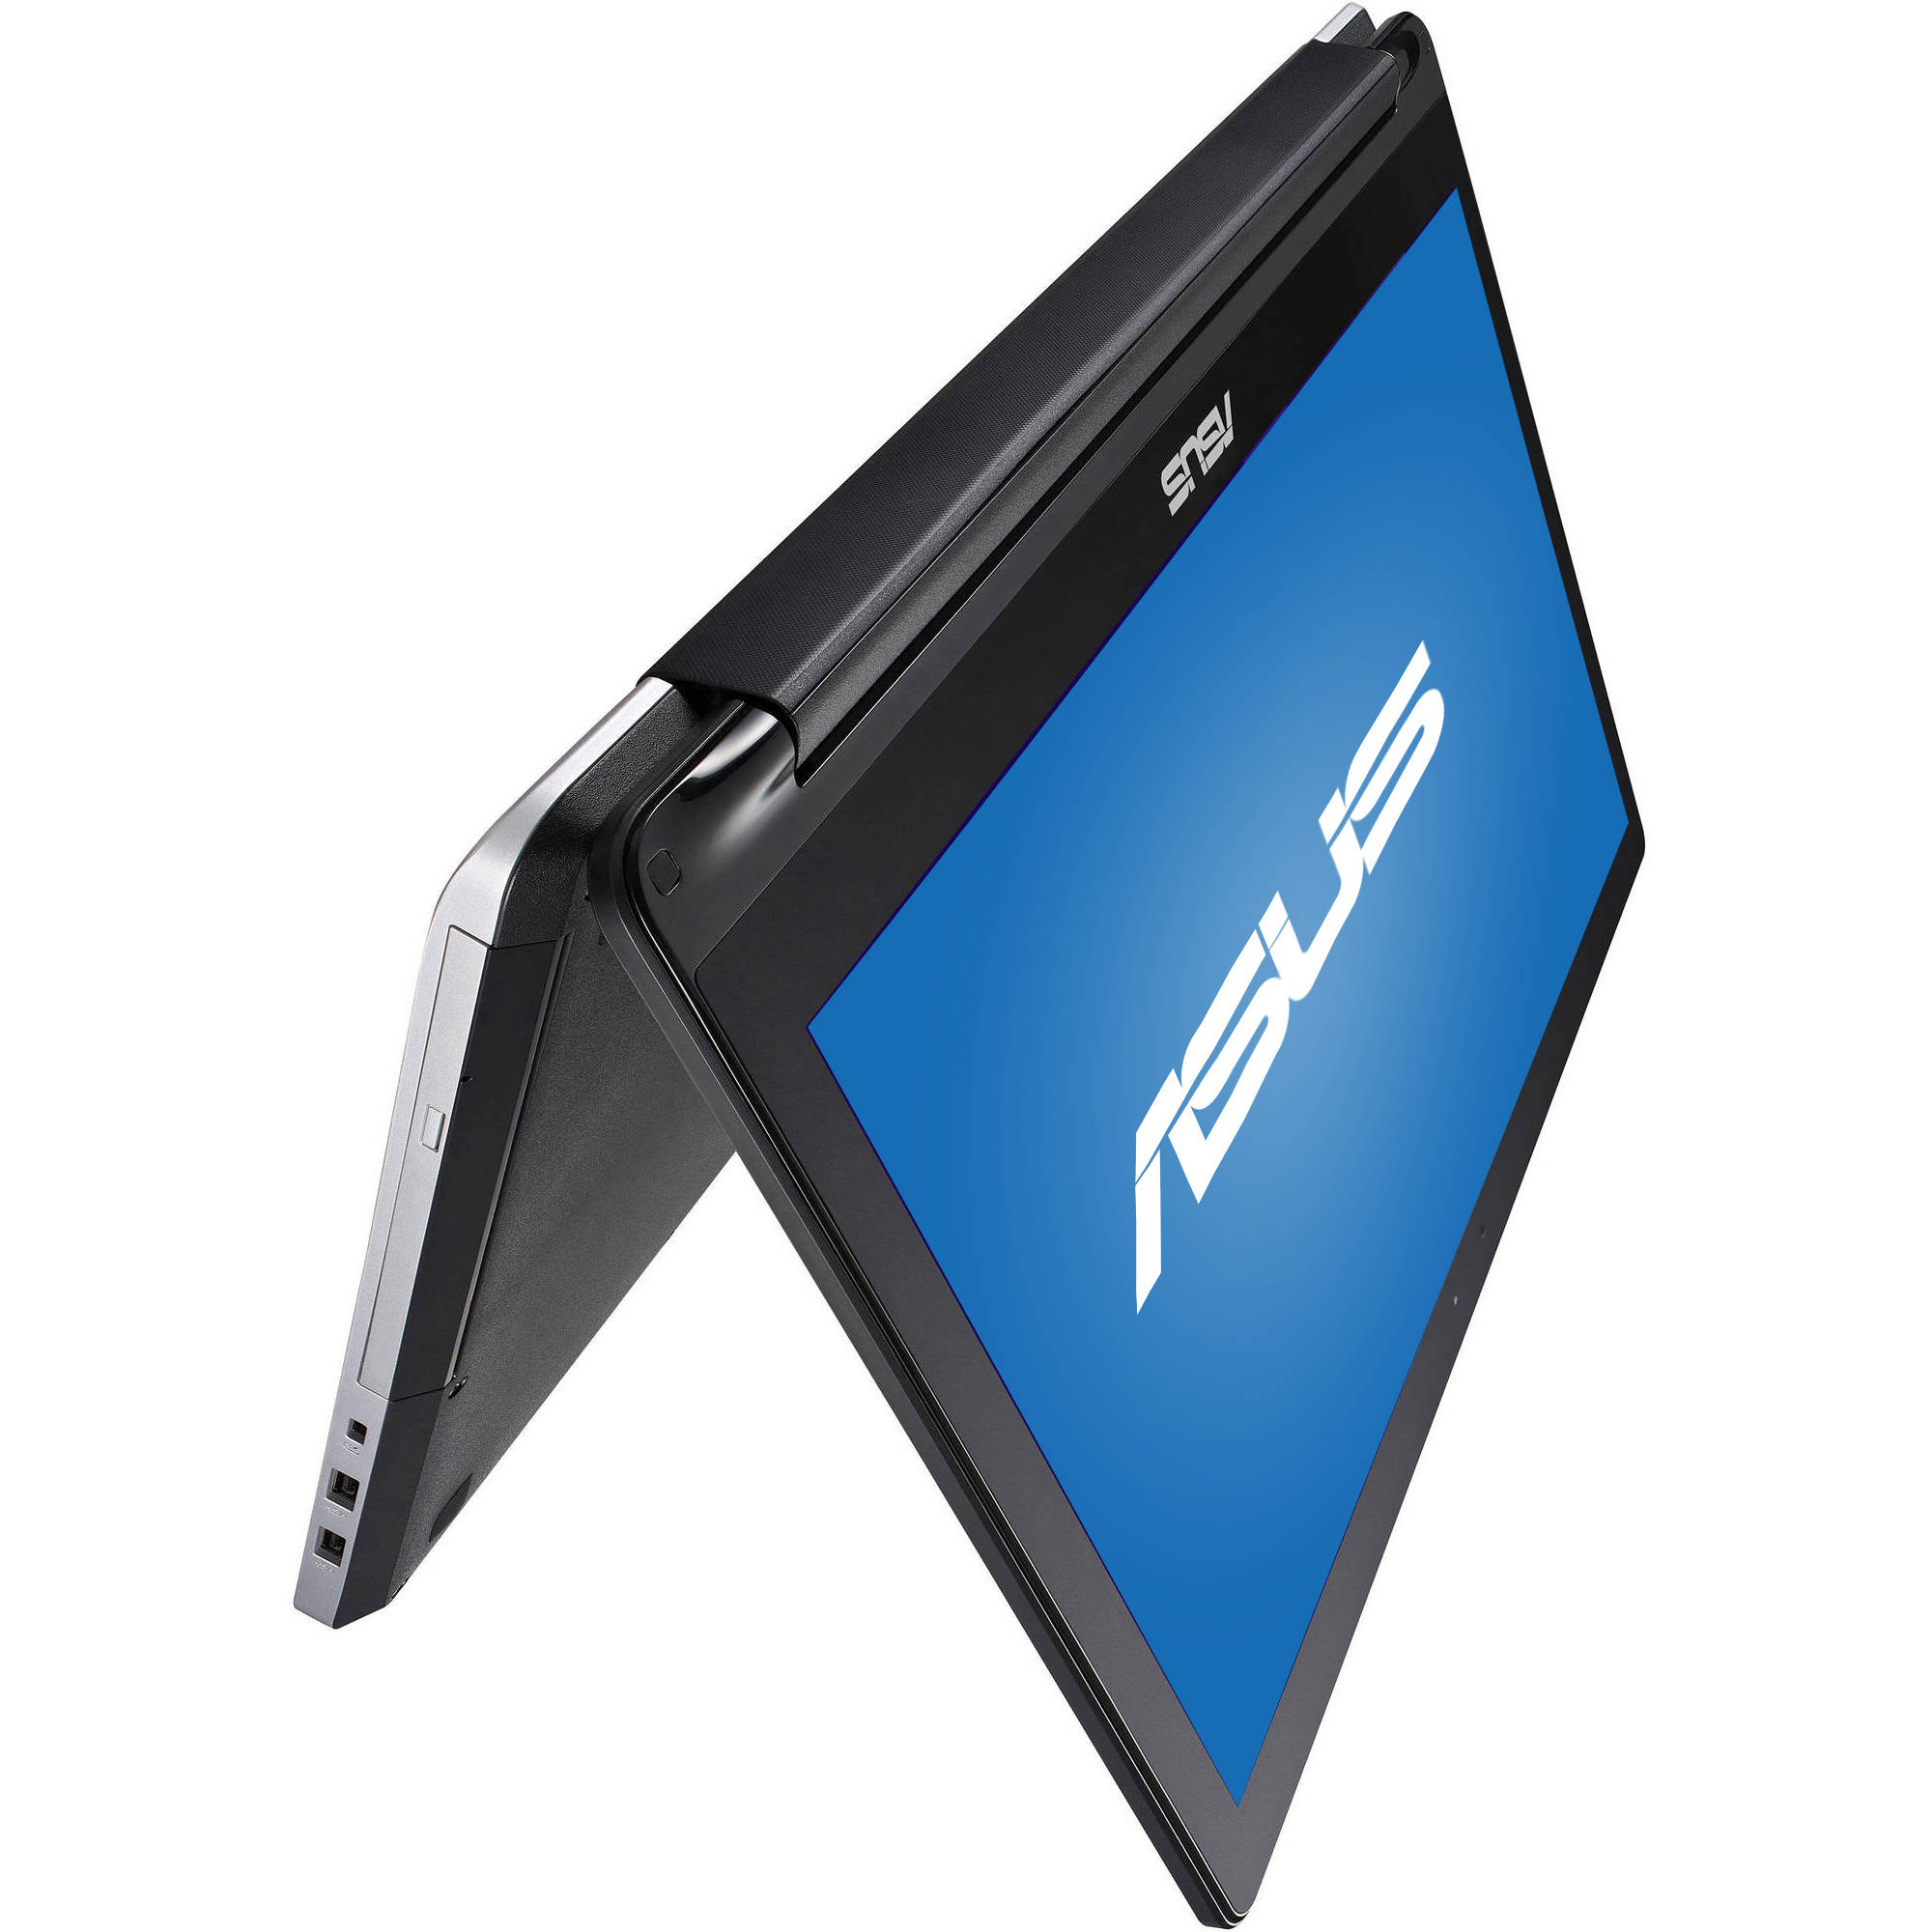 "ASUS Black/Silver 15.6"" R554LA-RH51T(WX) Laptop PC with Intel Core i5-5200U Processor, 6GB Memory, touch screen, 1TB Hard Drive and Windows 10"